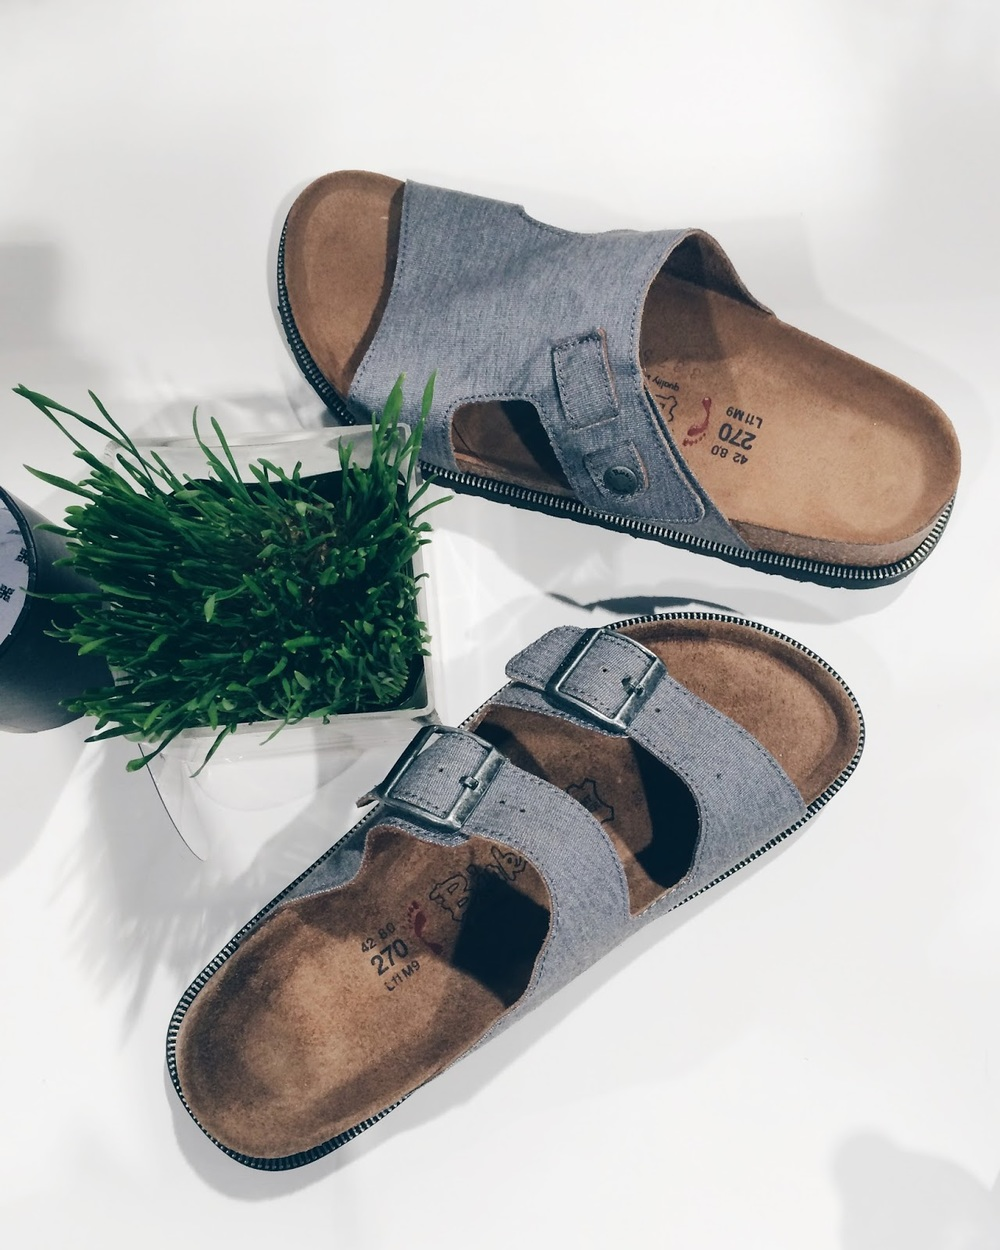 birkenstocks-mens-shoes-ss15.jpg